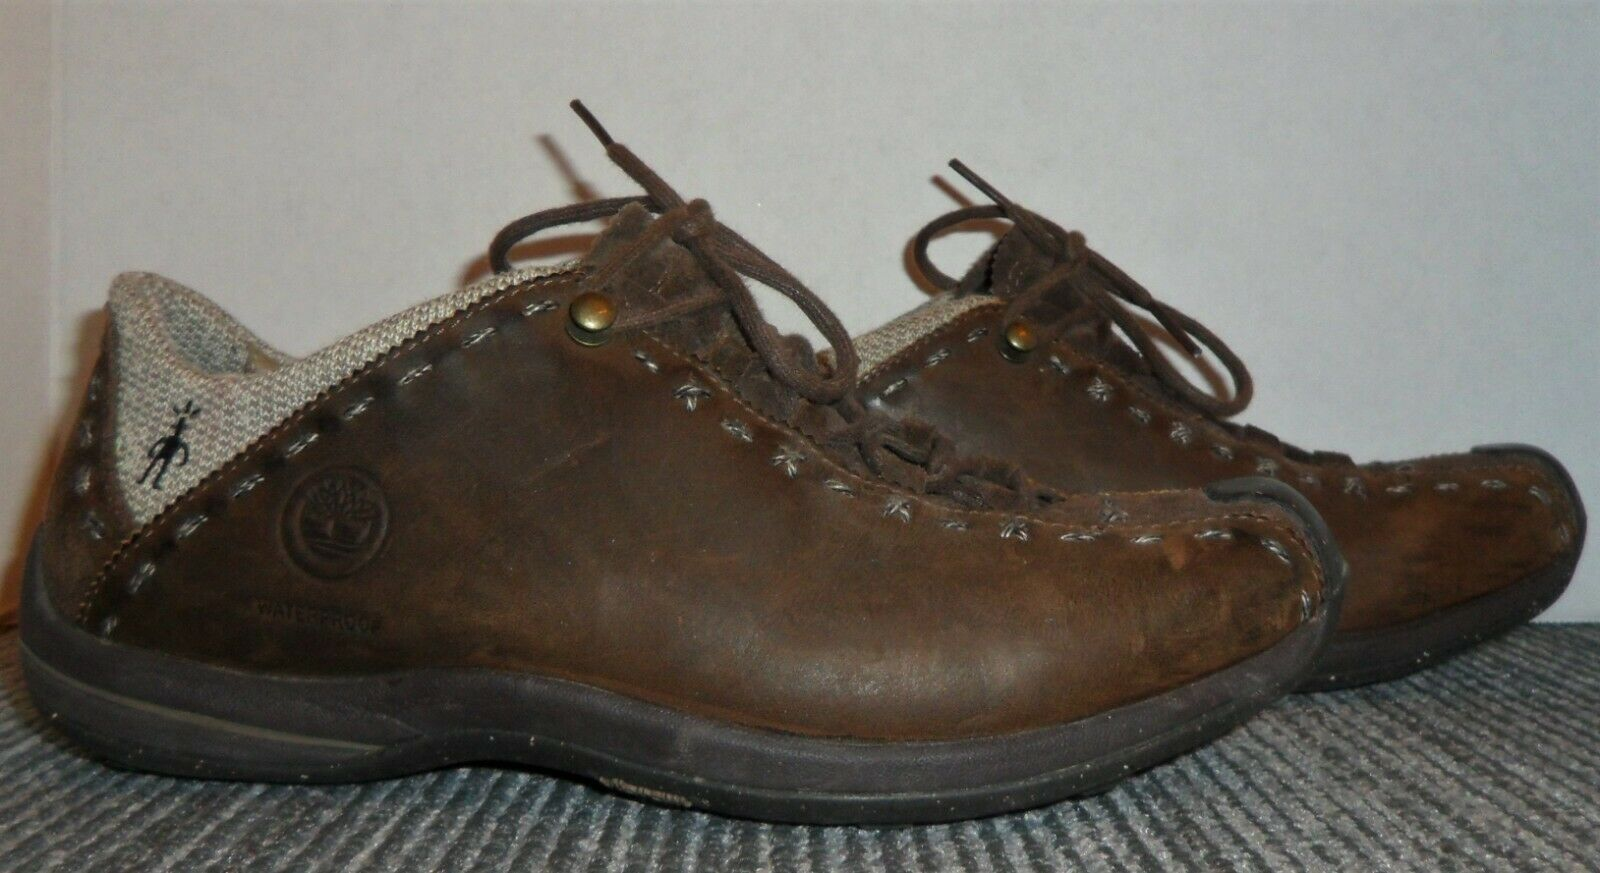 BARELY WORN TIMBERLAND SMARTWOOL LEATHER HIKING OXFORDS WOMEN'S SIZE 8.5 M!